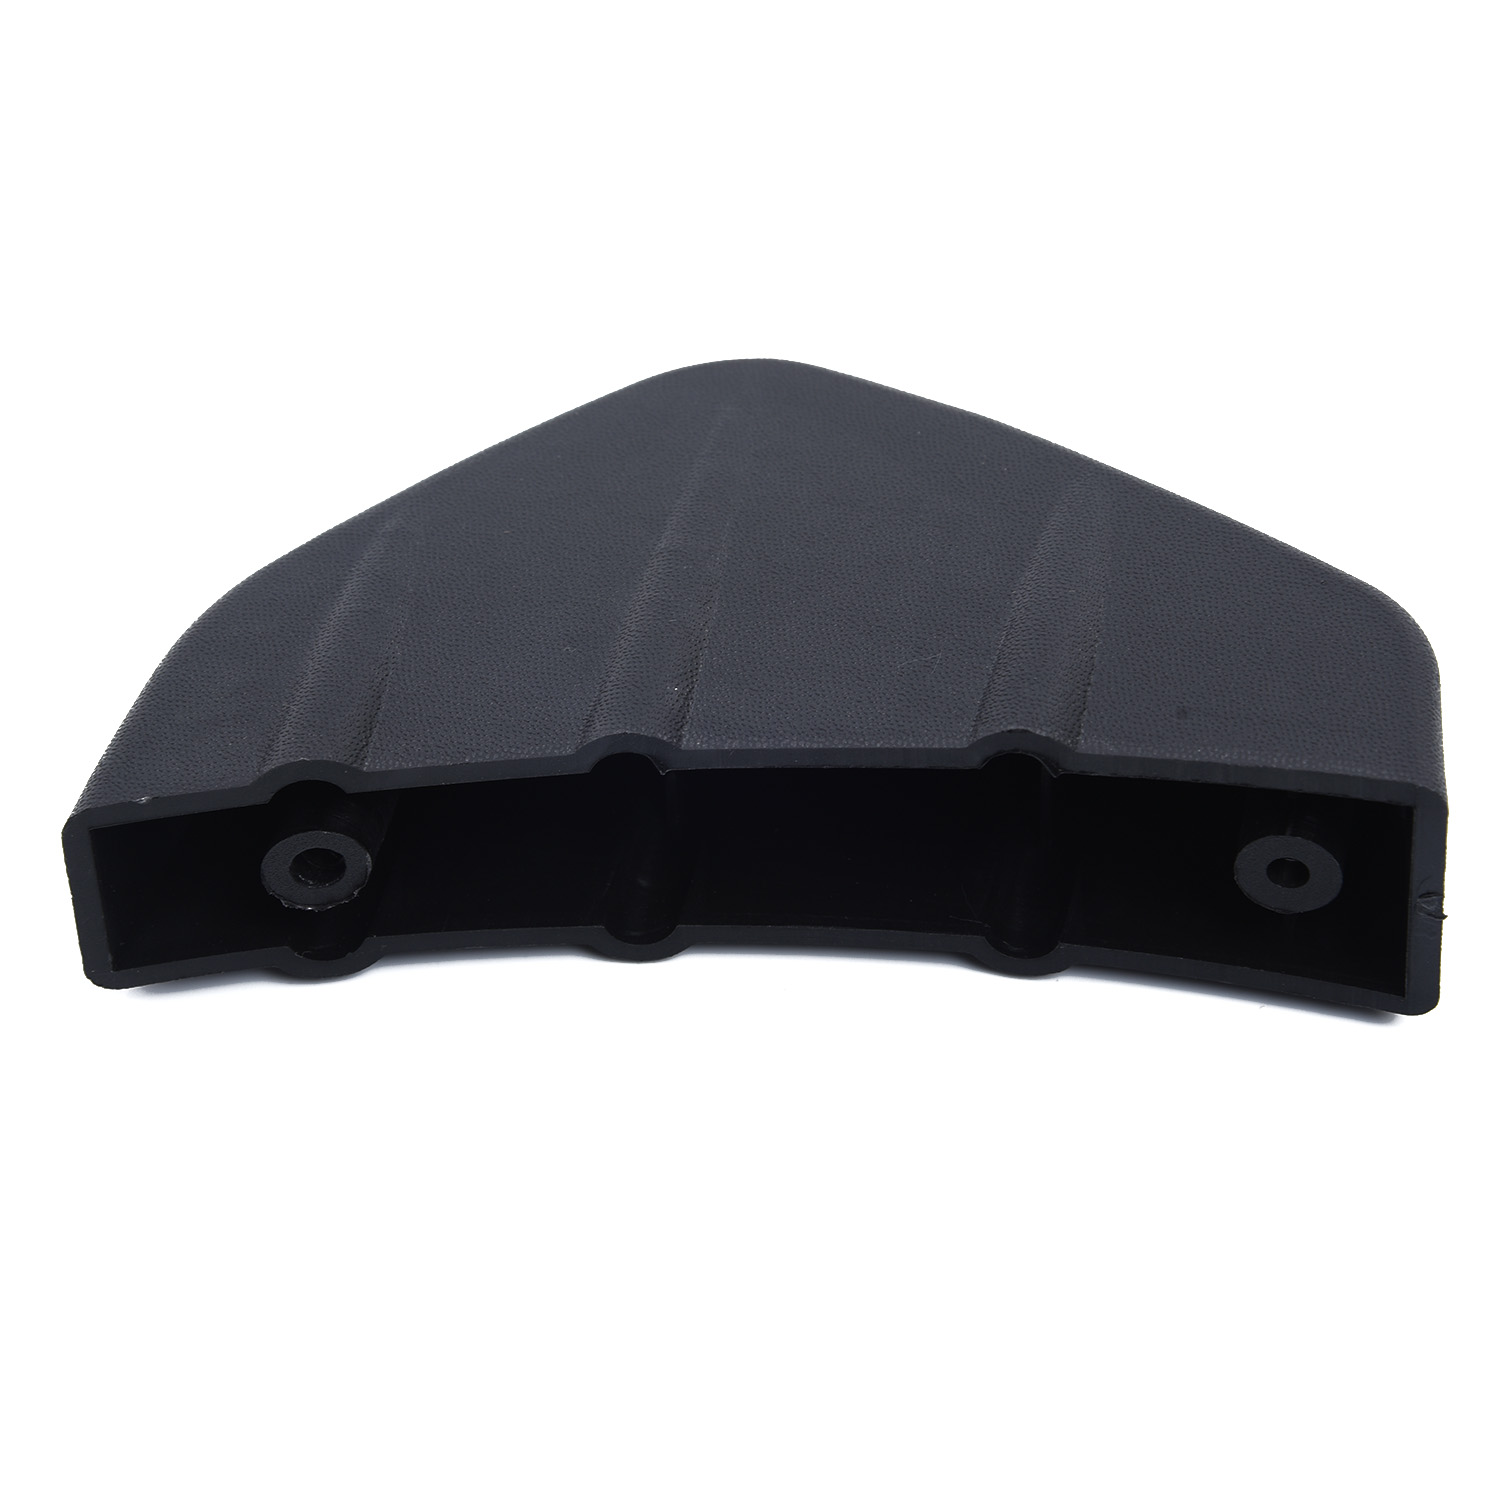 4pcs Car SUV Rear Bumper Diffuser Molding Shark Fin Spoiler Protector Cover PVC Black Car Styling Universal in Bumpers from Automobiles Motorcycles